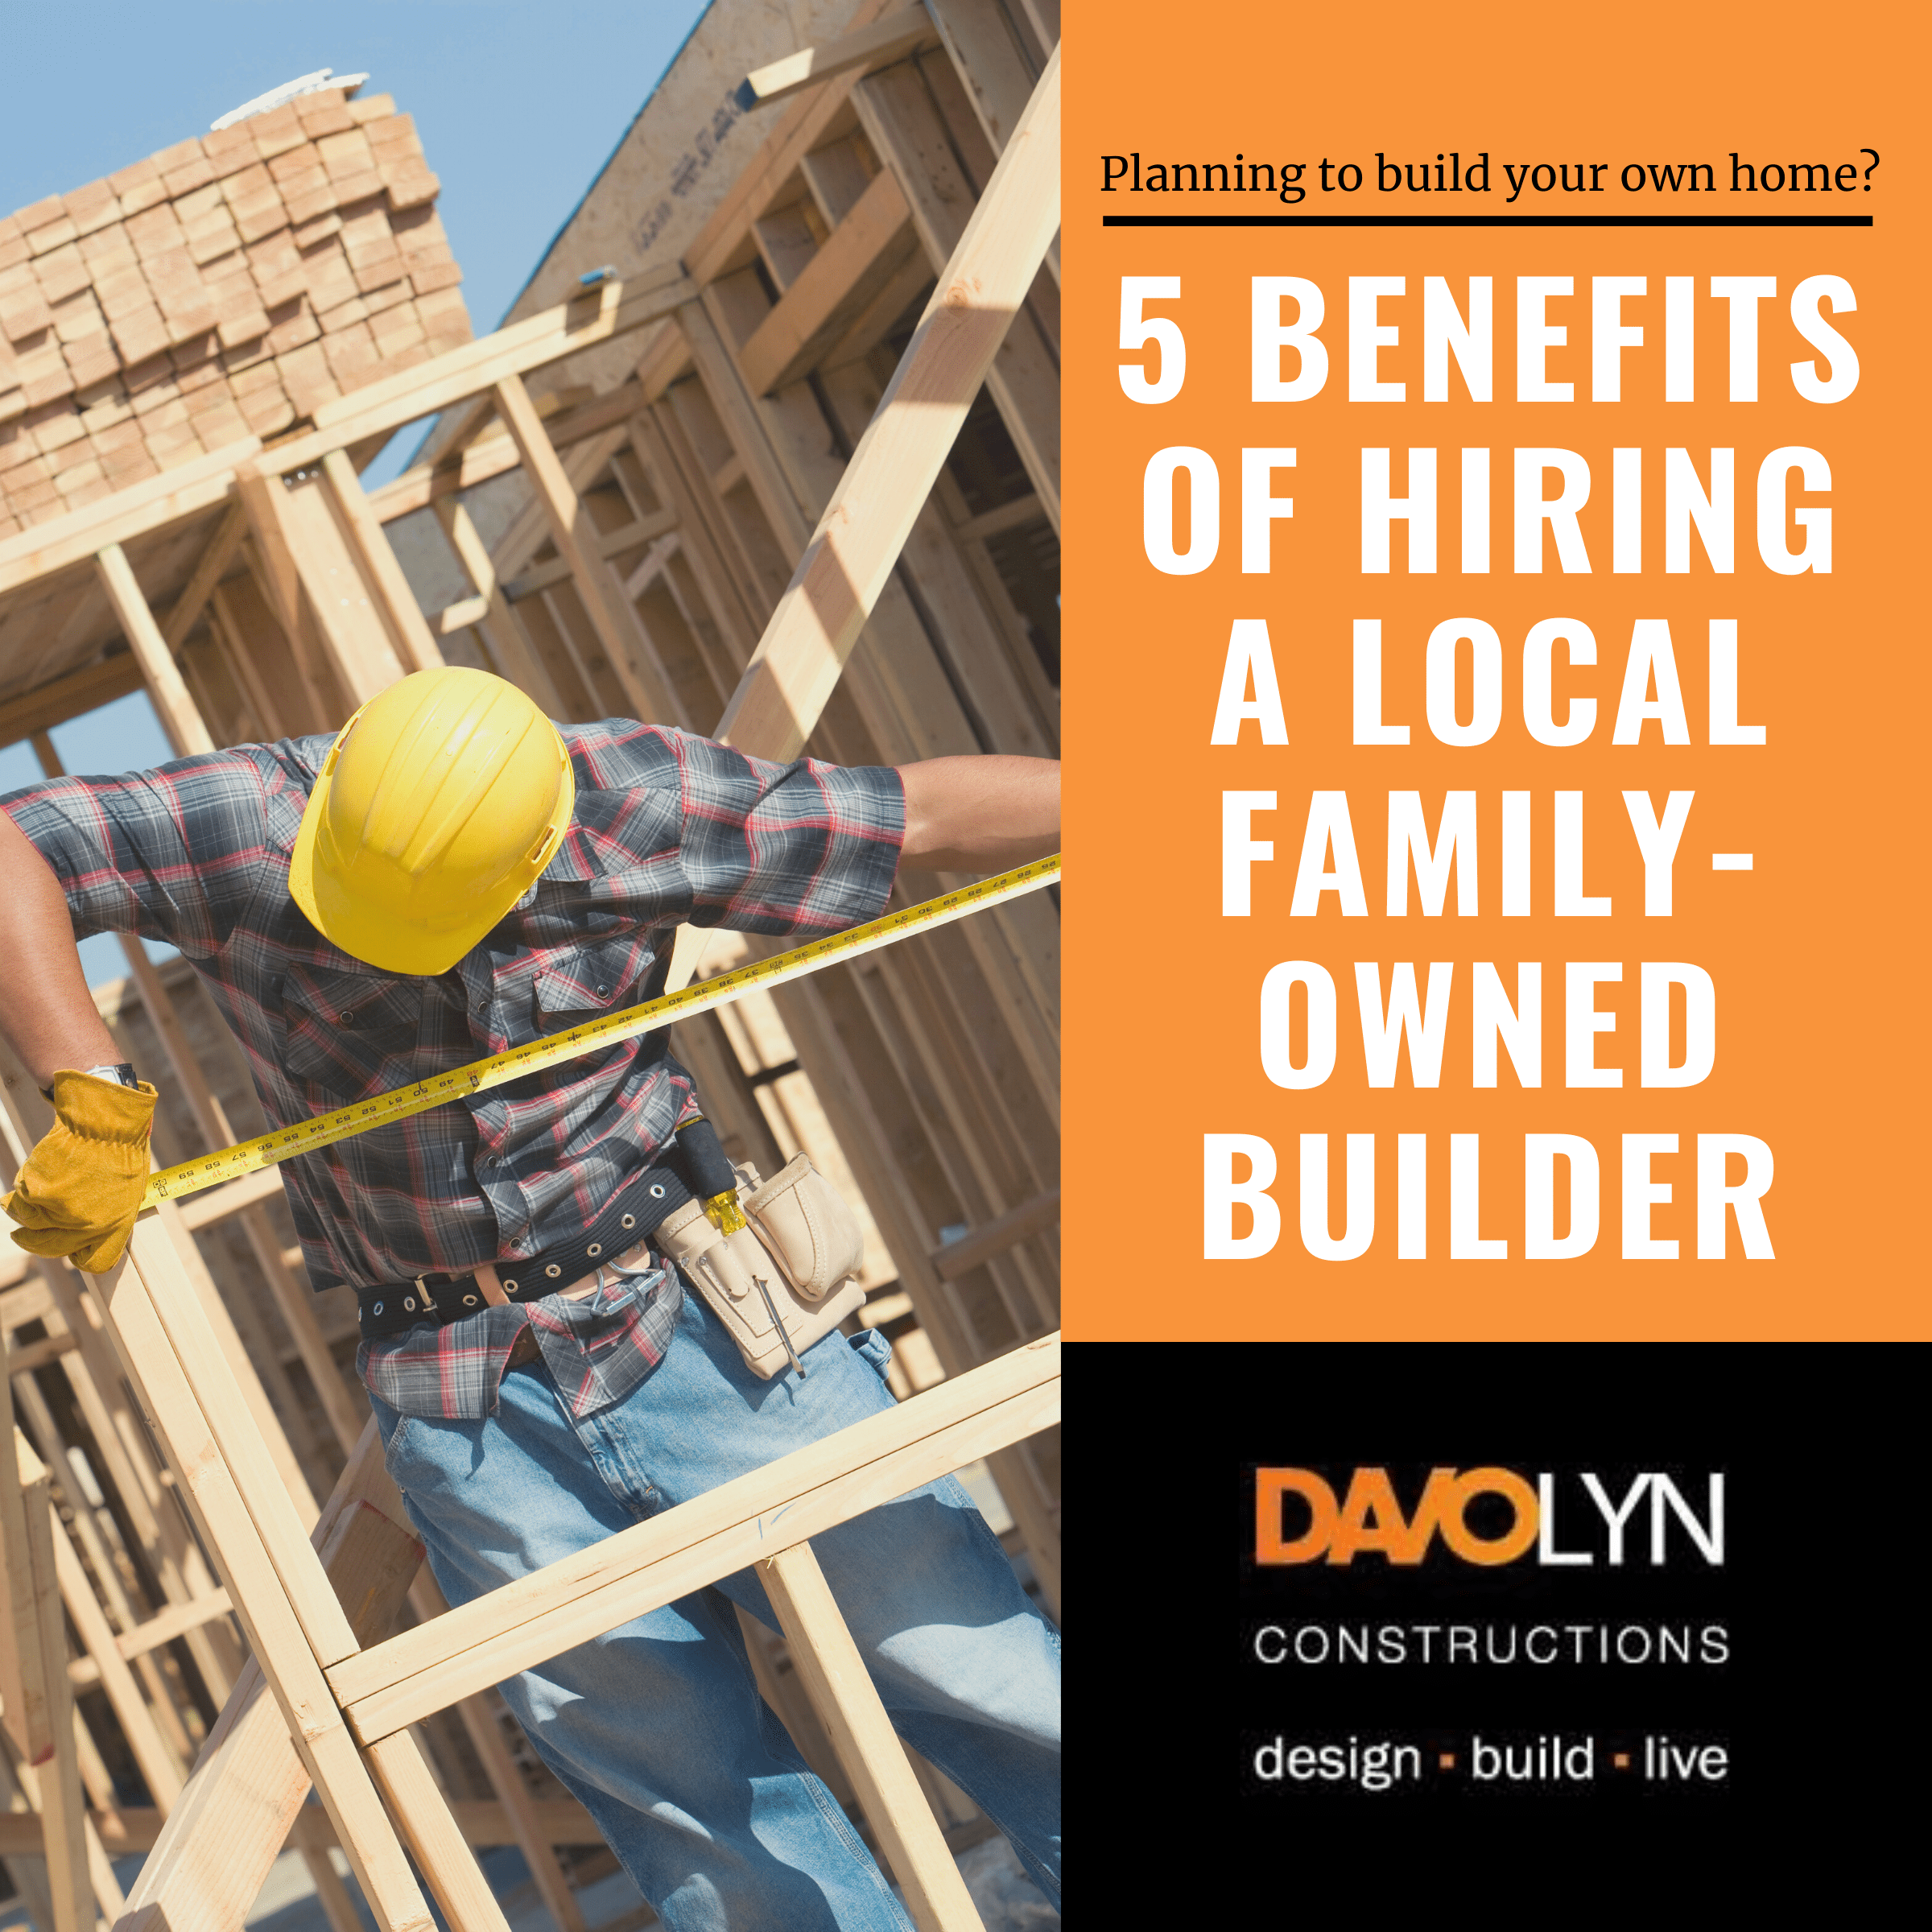 5 Benefits of Hiring a Local Family-Owned Builder